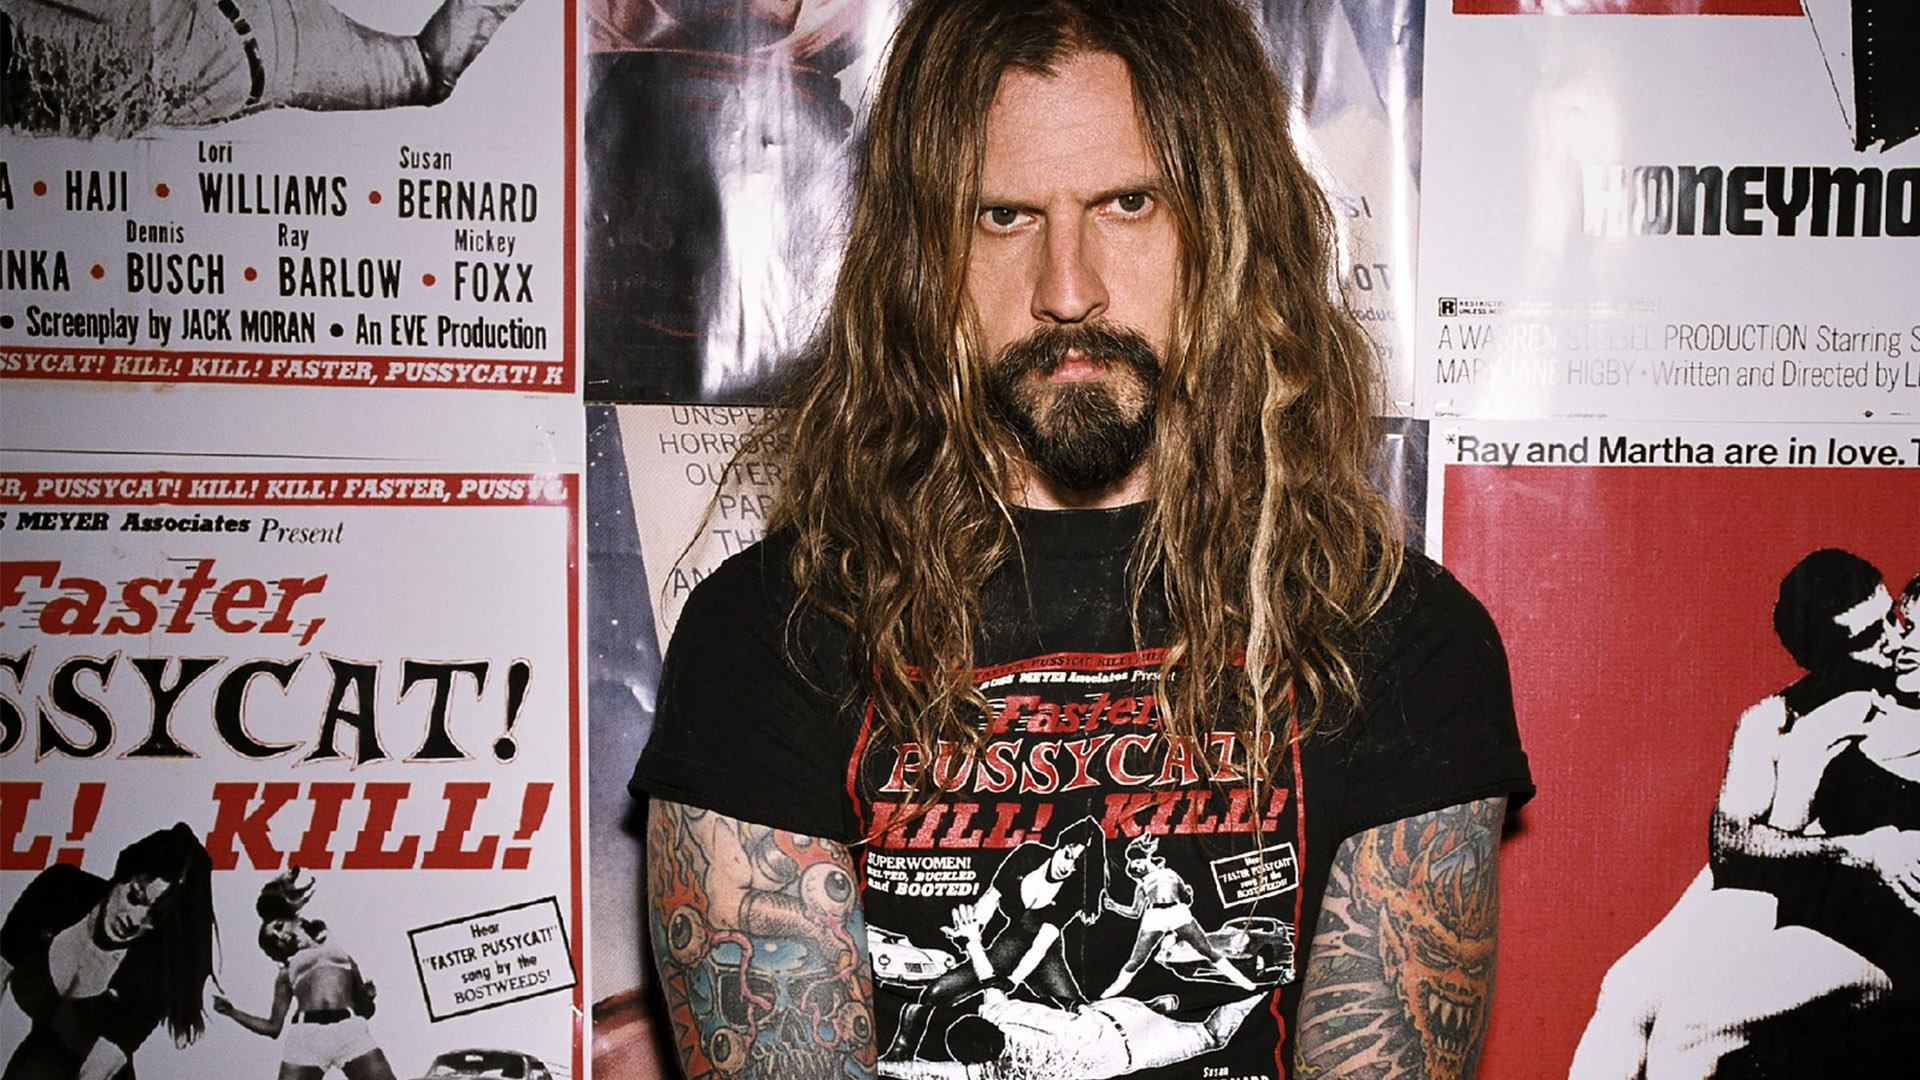 rob Zombie - 21 Movies. 5 Filmmakers. Limitless Futures: The Best of the New Breed Horror Director